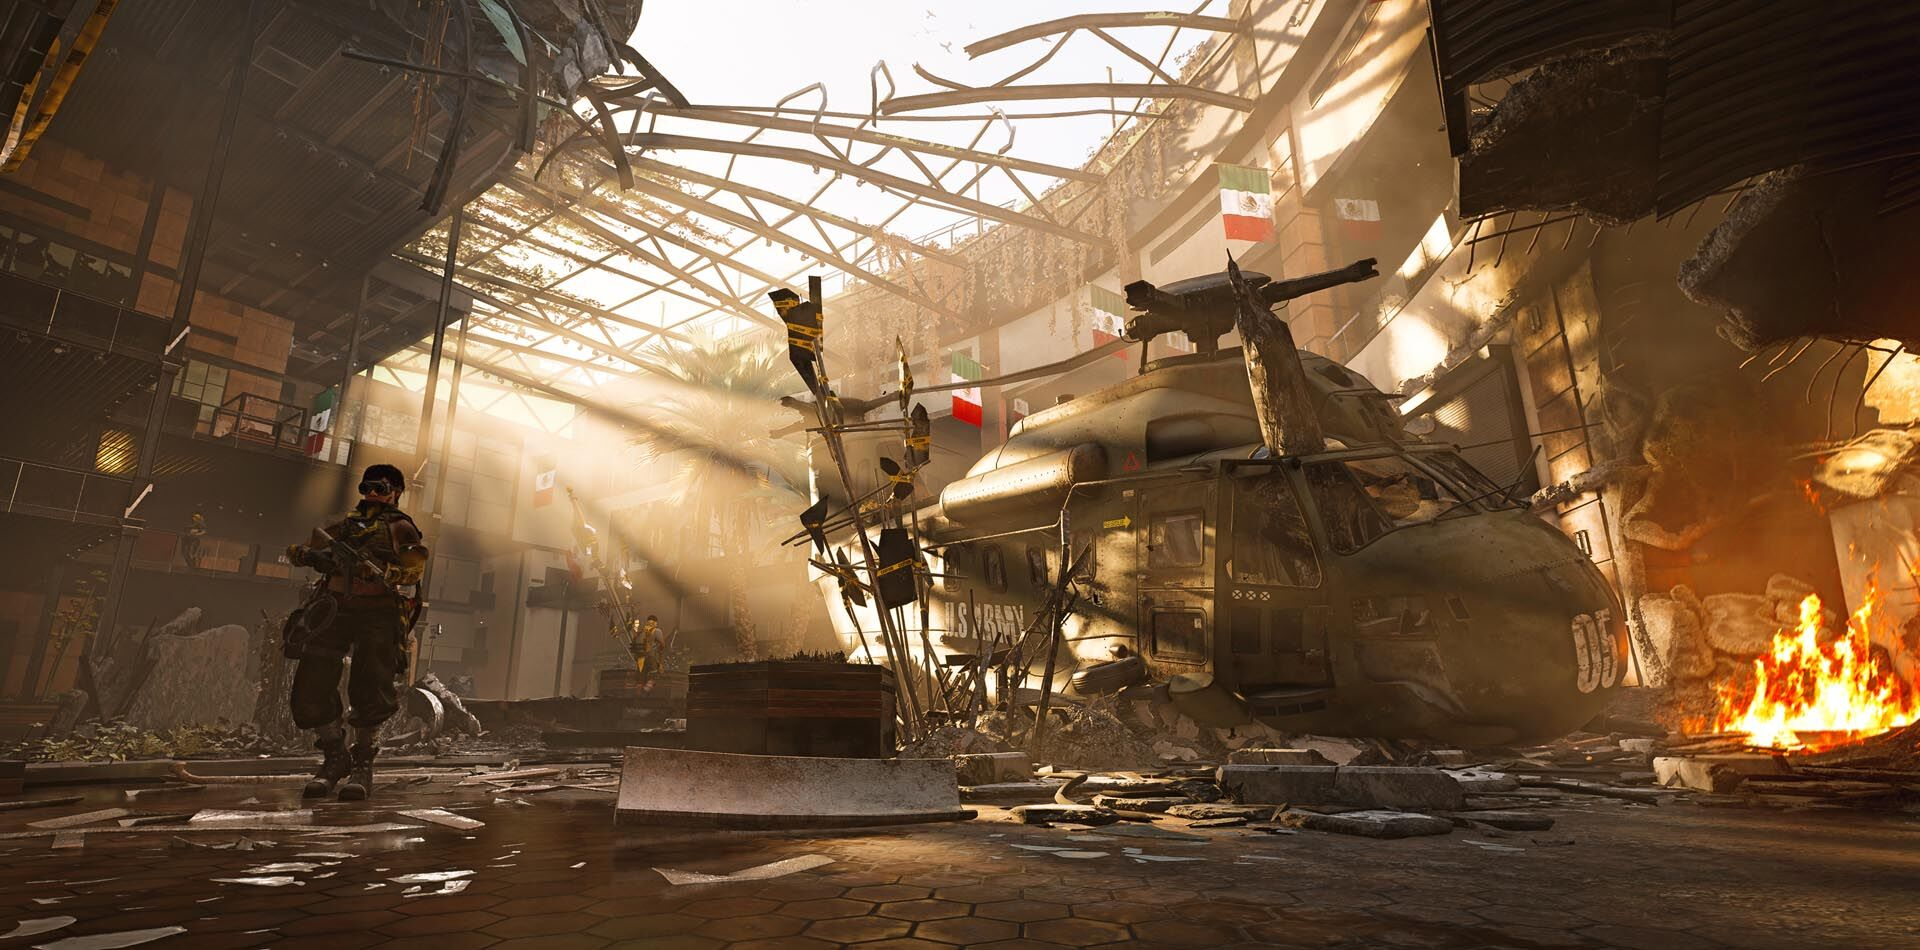 Division 2's Title Update 6 arrives next week with Episode 2 – Pentagon: The Last Castle